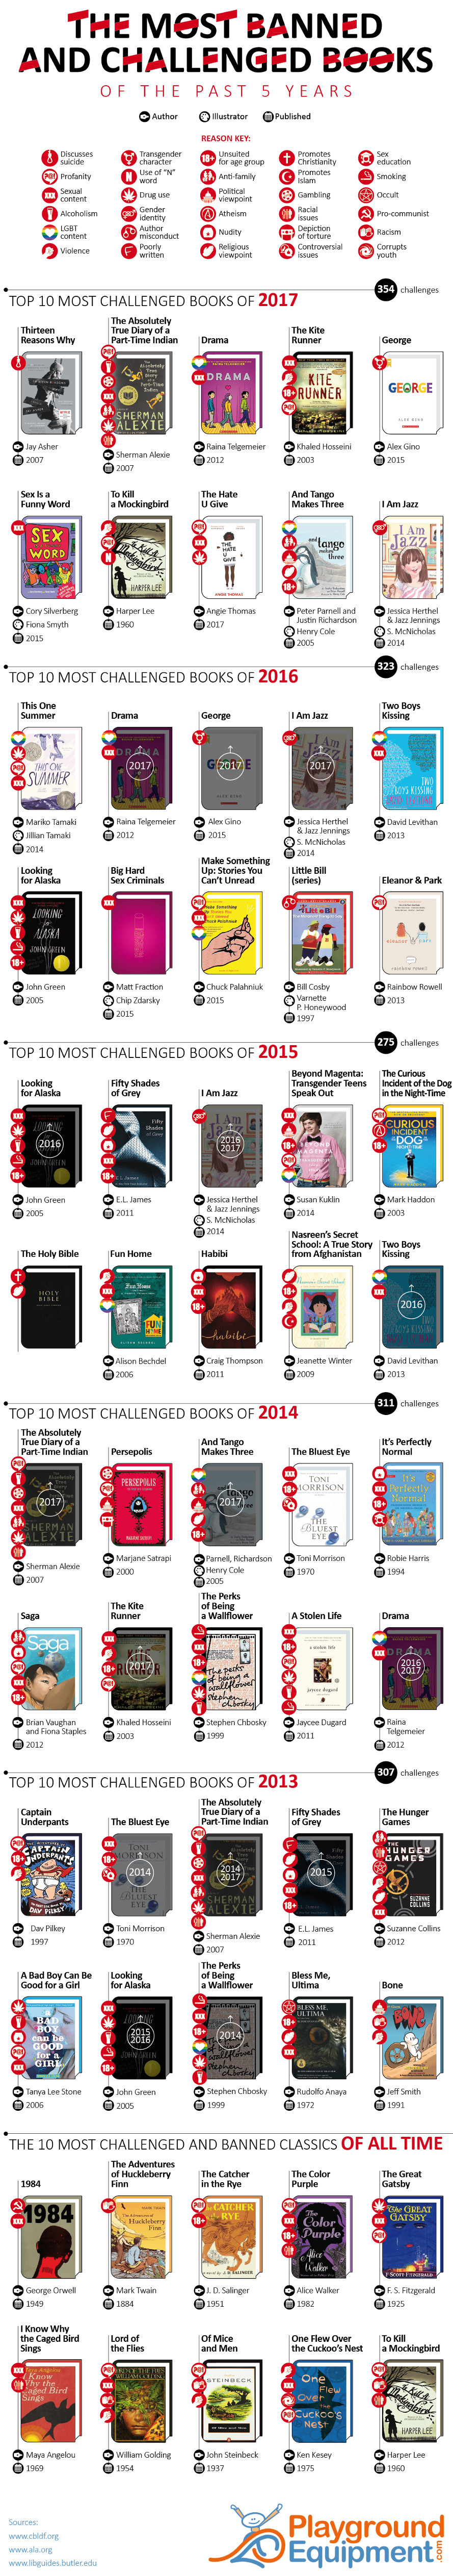 The Most Banned and Challenged Books of the Past 5 Years - PlaygroundEquipment.com - Infographic